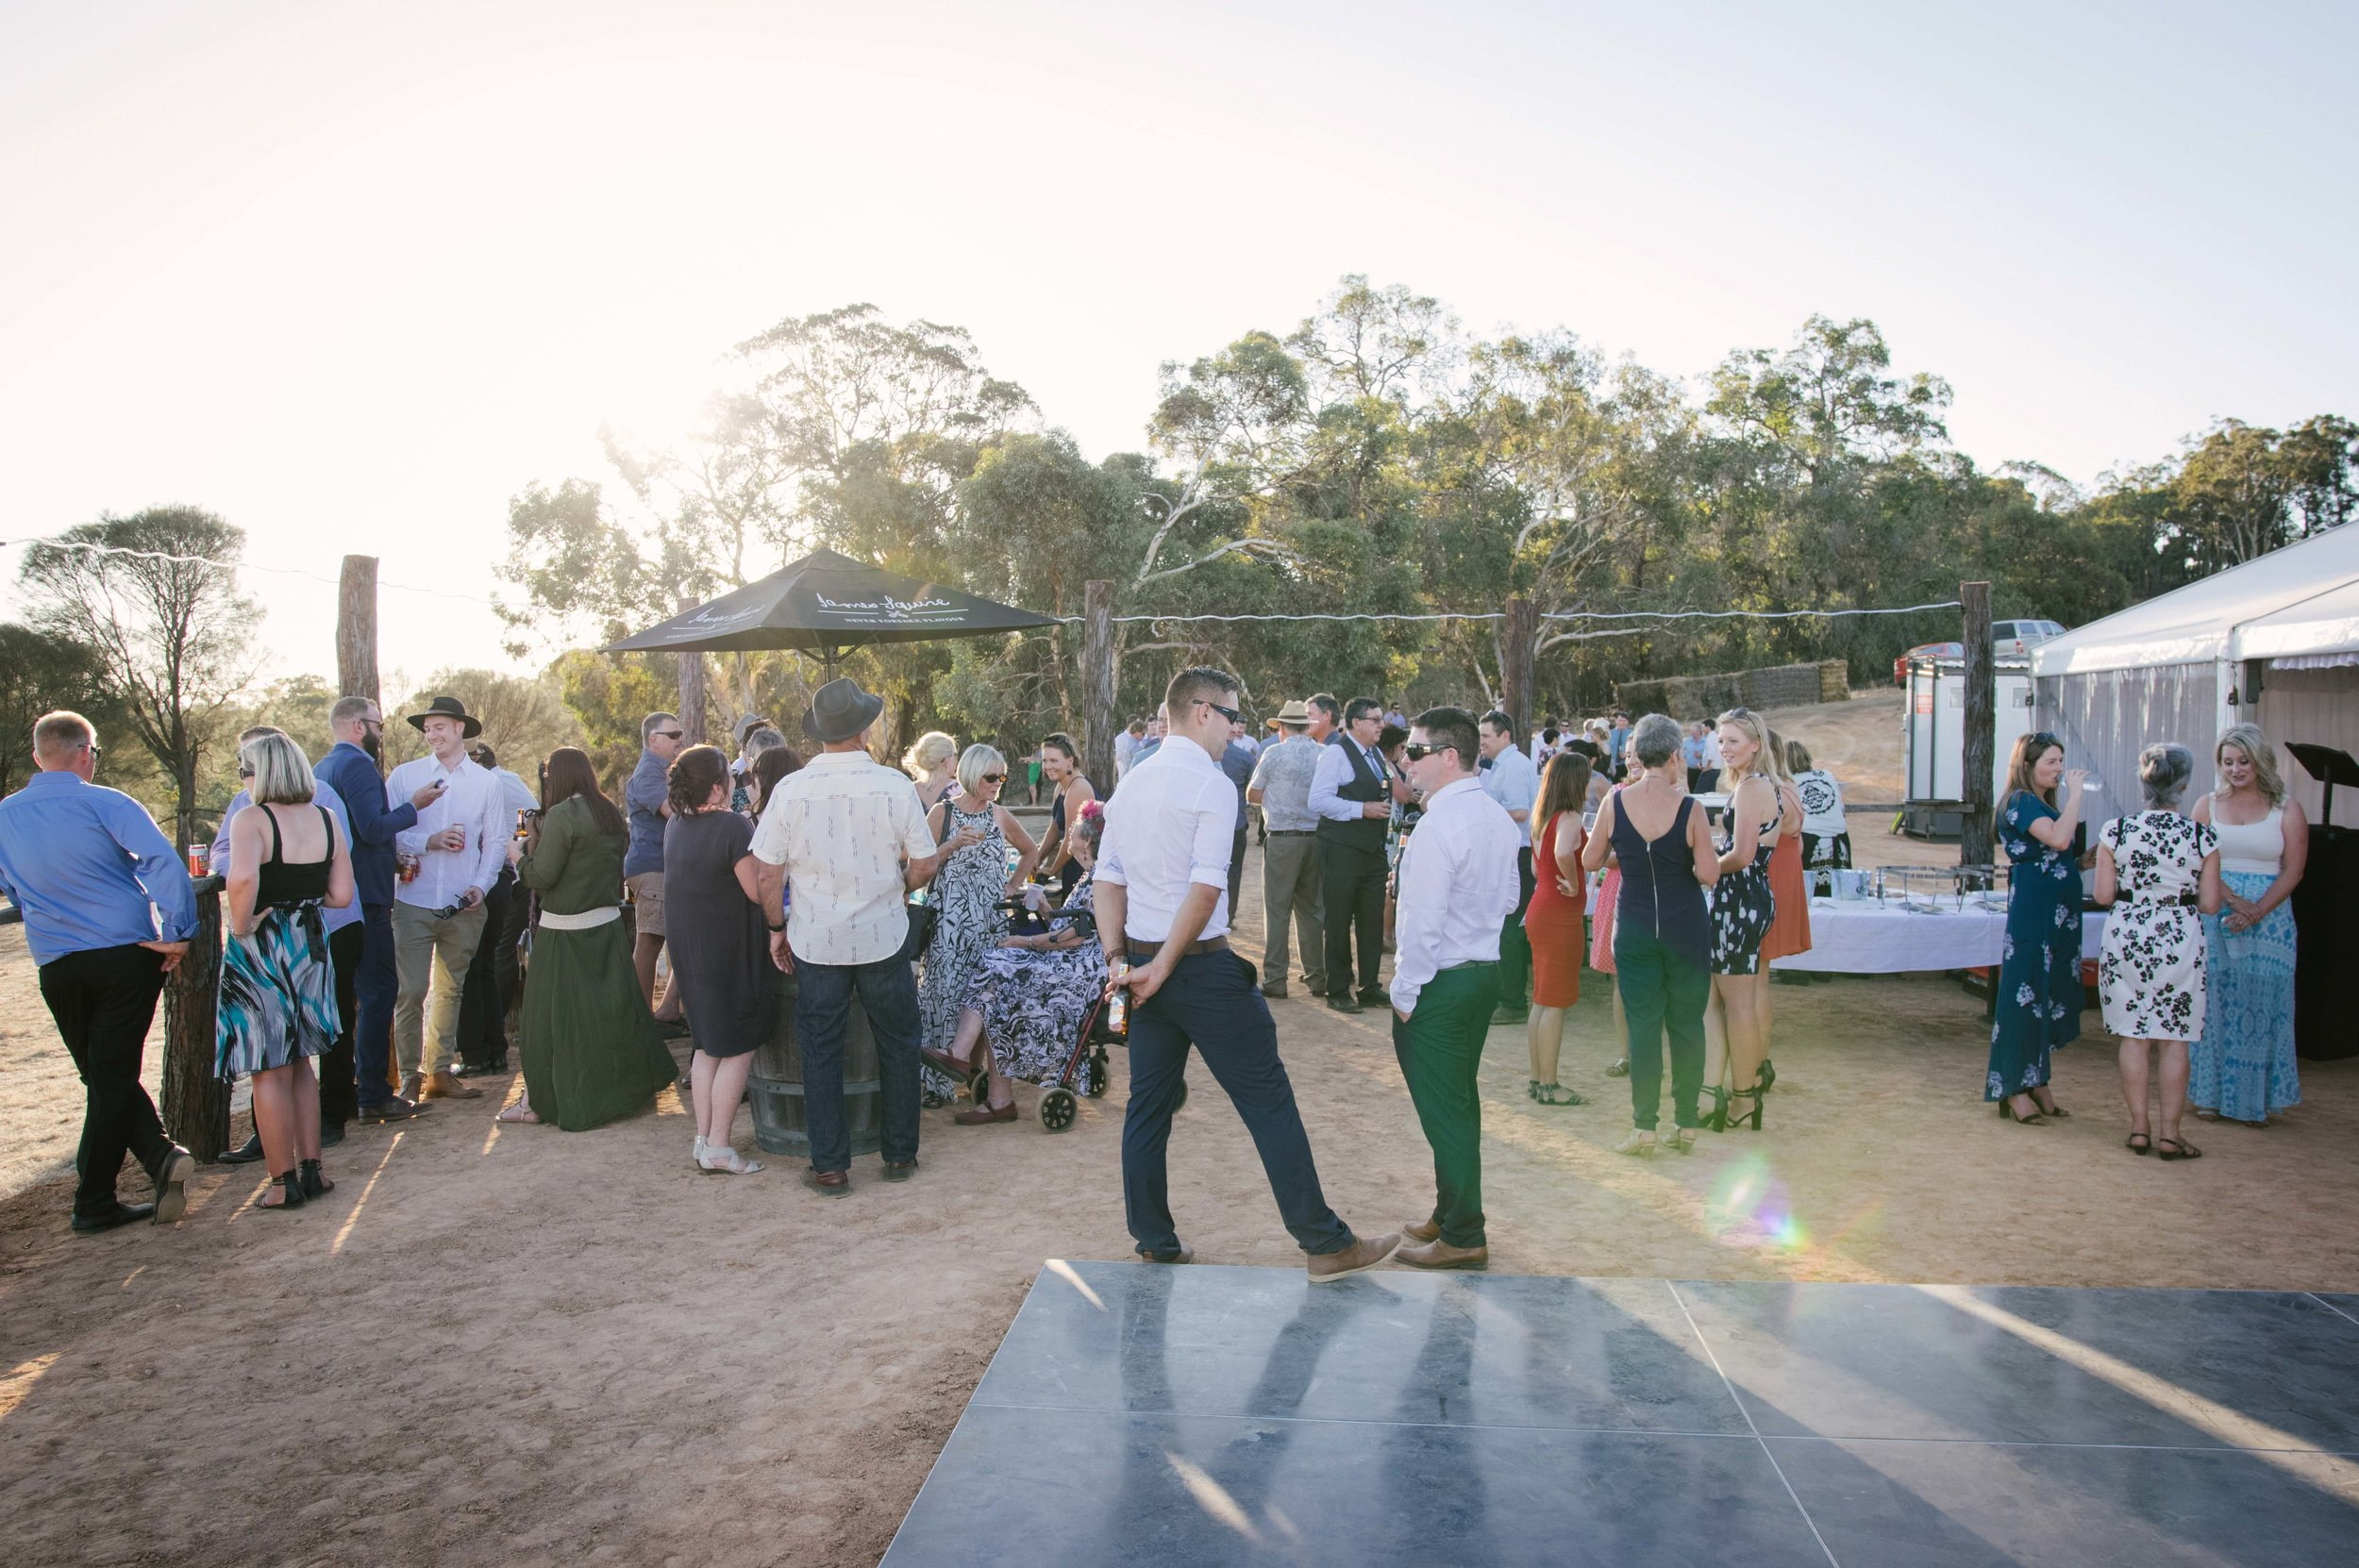 Rustc Rural Farm Wheatbelt Country Wedding Photographer Photography Candid Documentary (53).jpg